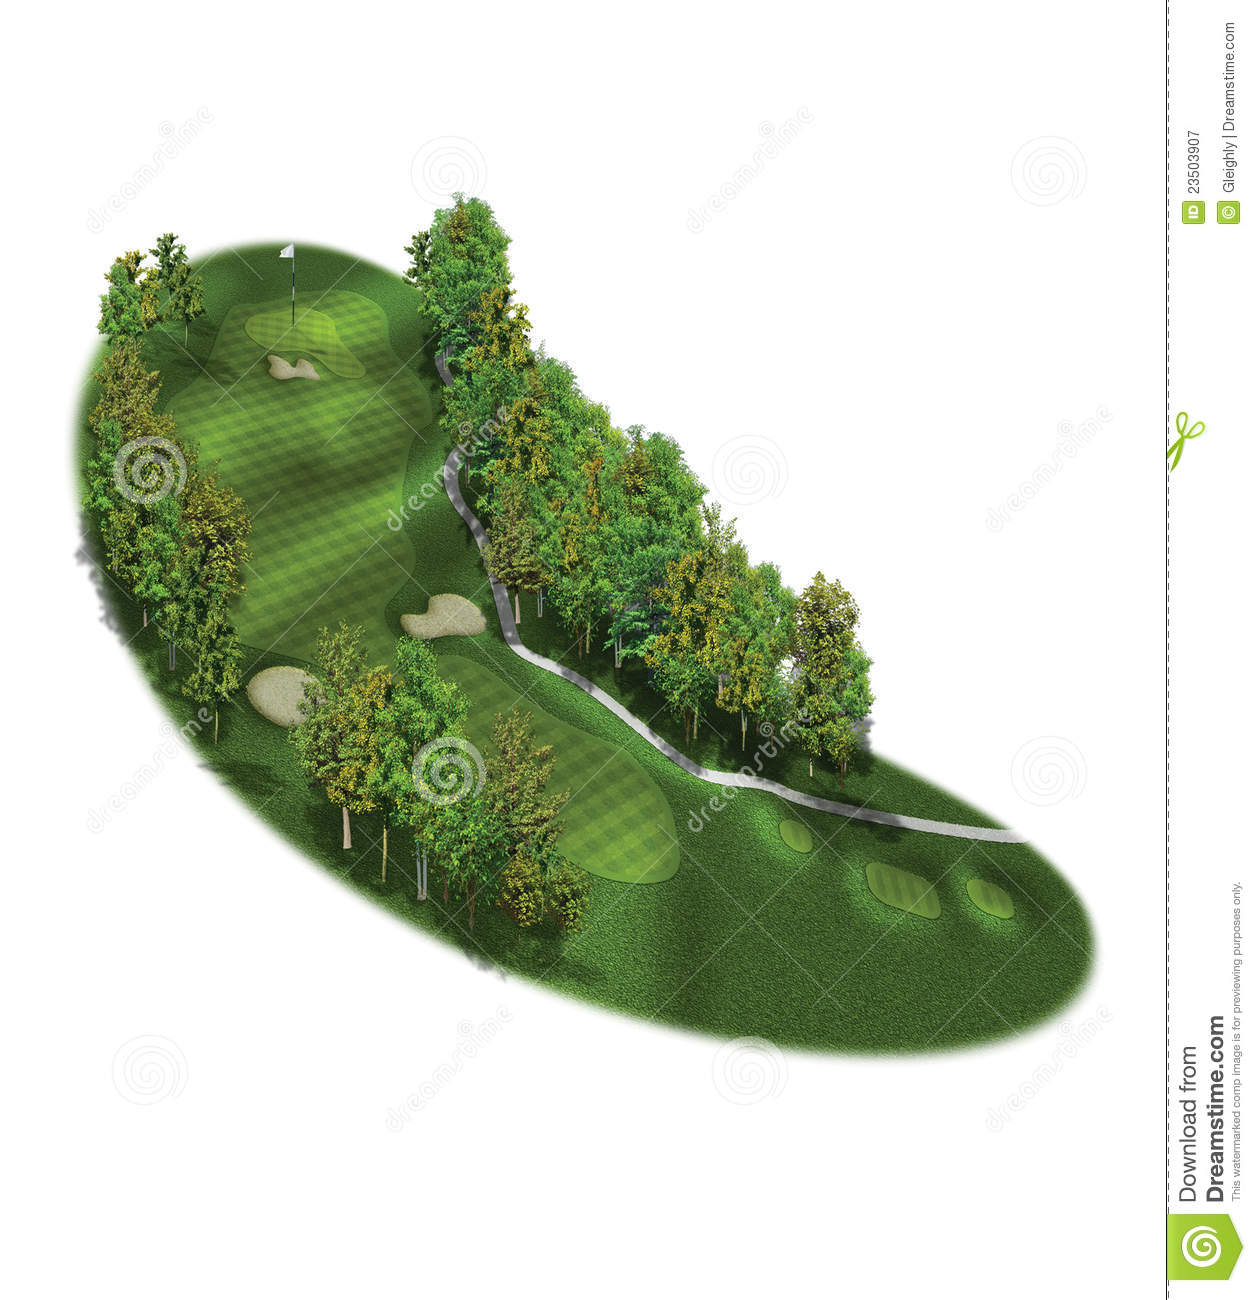 Golf Course Aerial View Stock Illustrations 43 Golf Course Aerial View Stock Illustrations Vectors Clipart Dreamstime